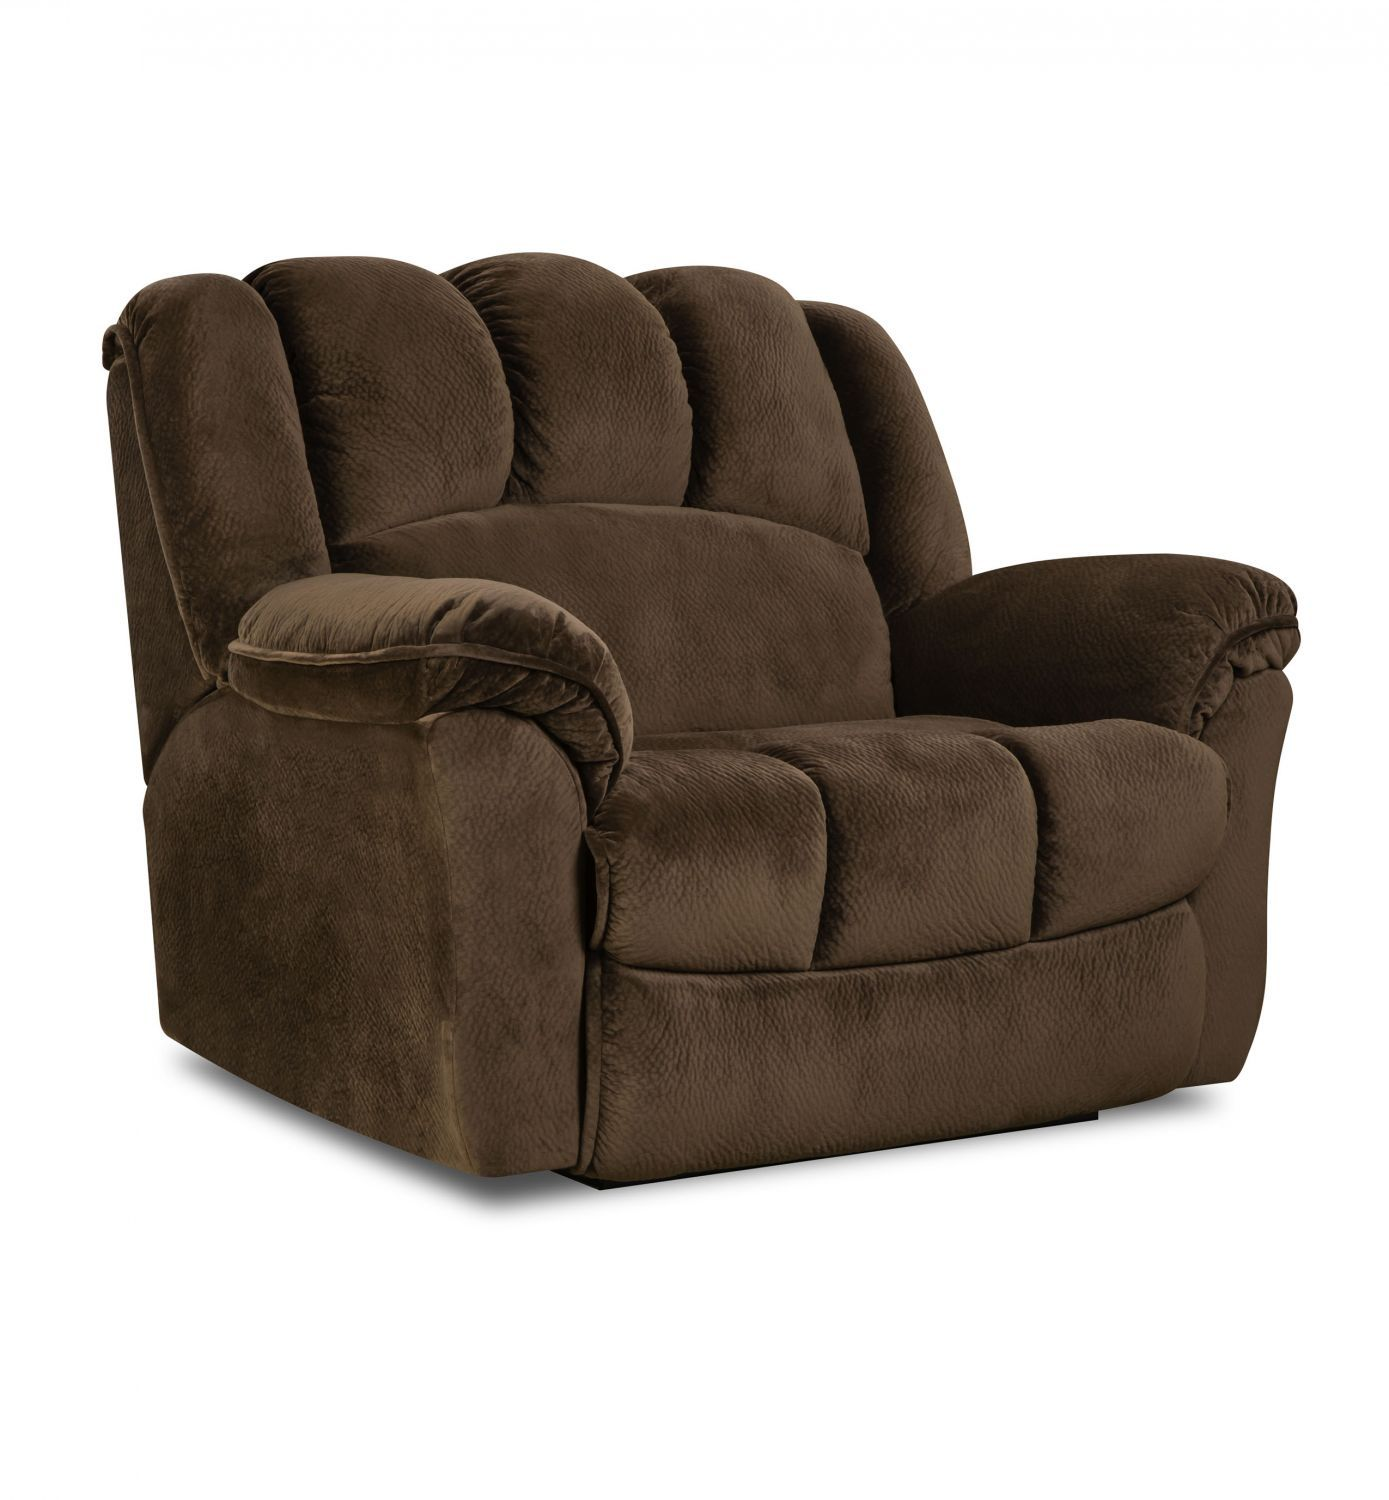 This Oversized Snuggler Recliner Is Just Big Enough For